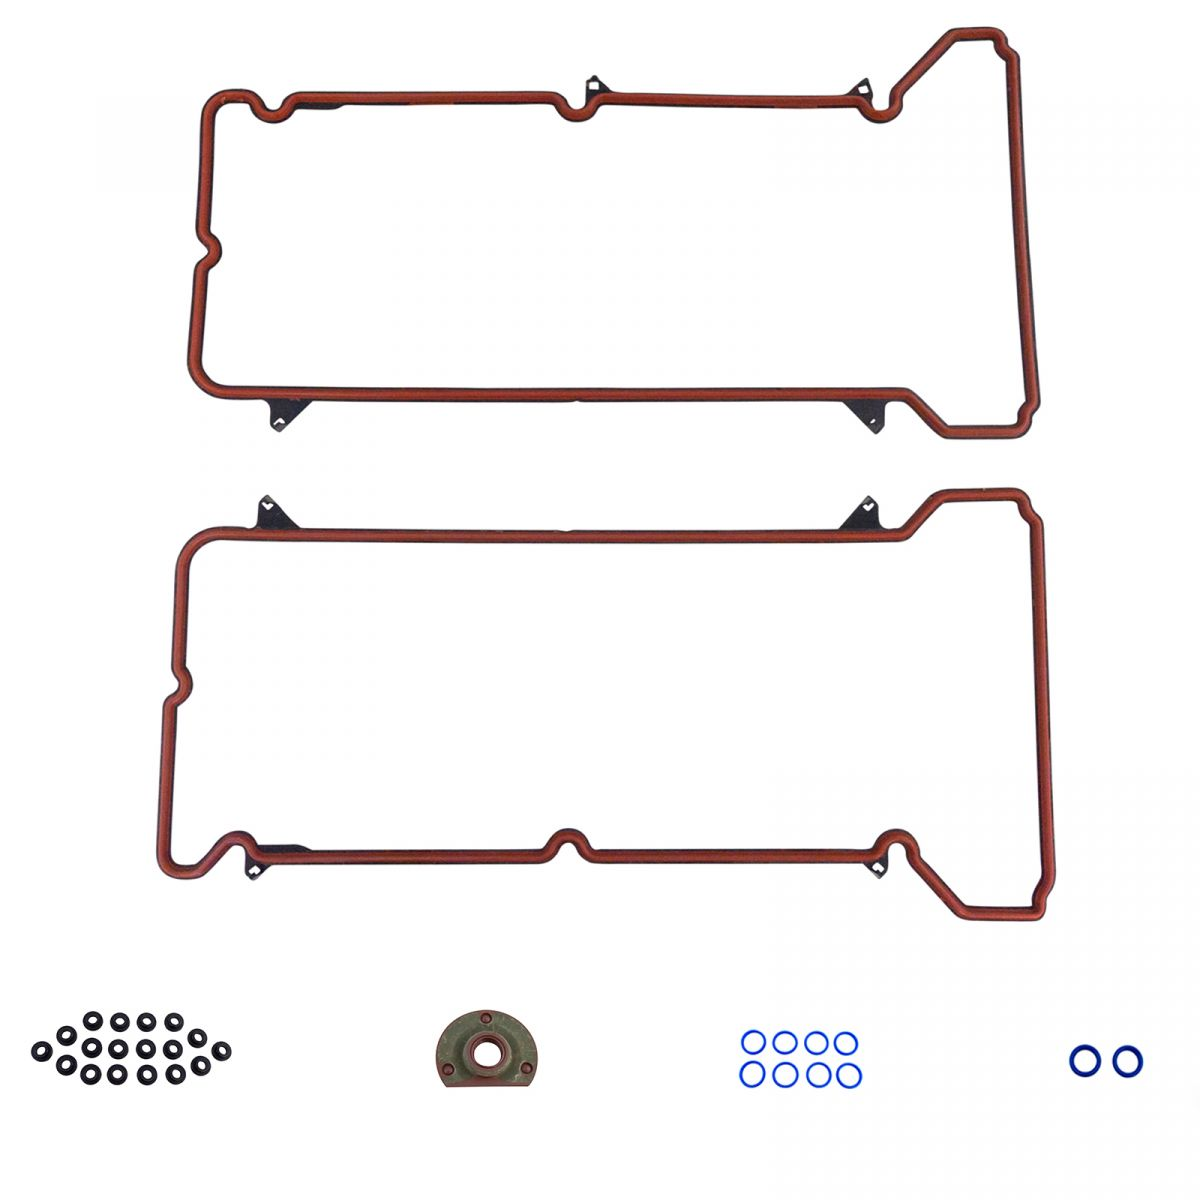 TUPARTS Automotive Valve Cover Gasket Sets Replacement for Buick Lucerne 4.6 L